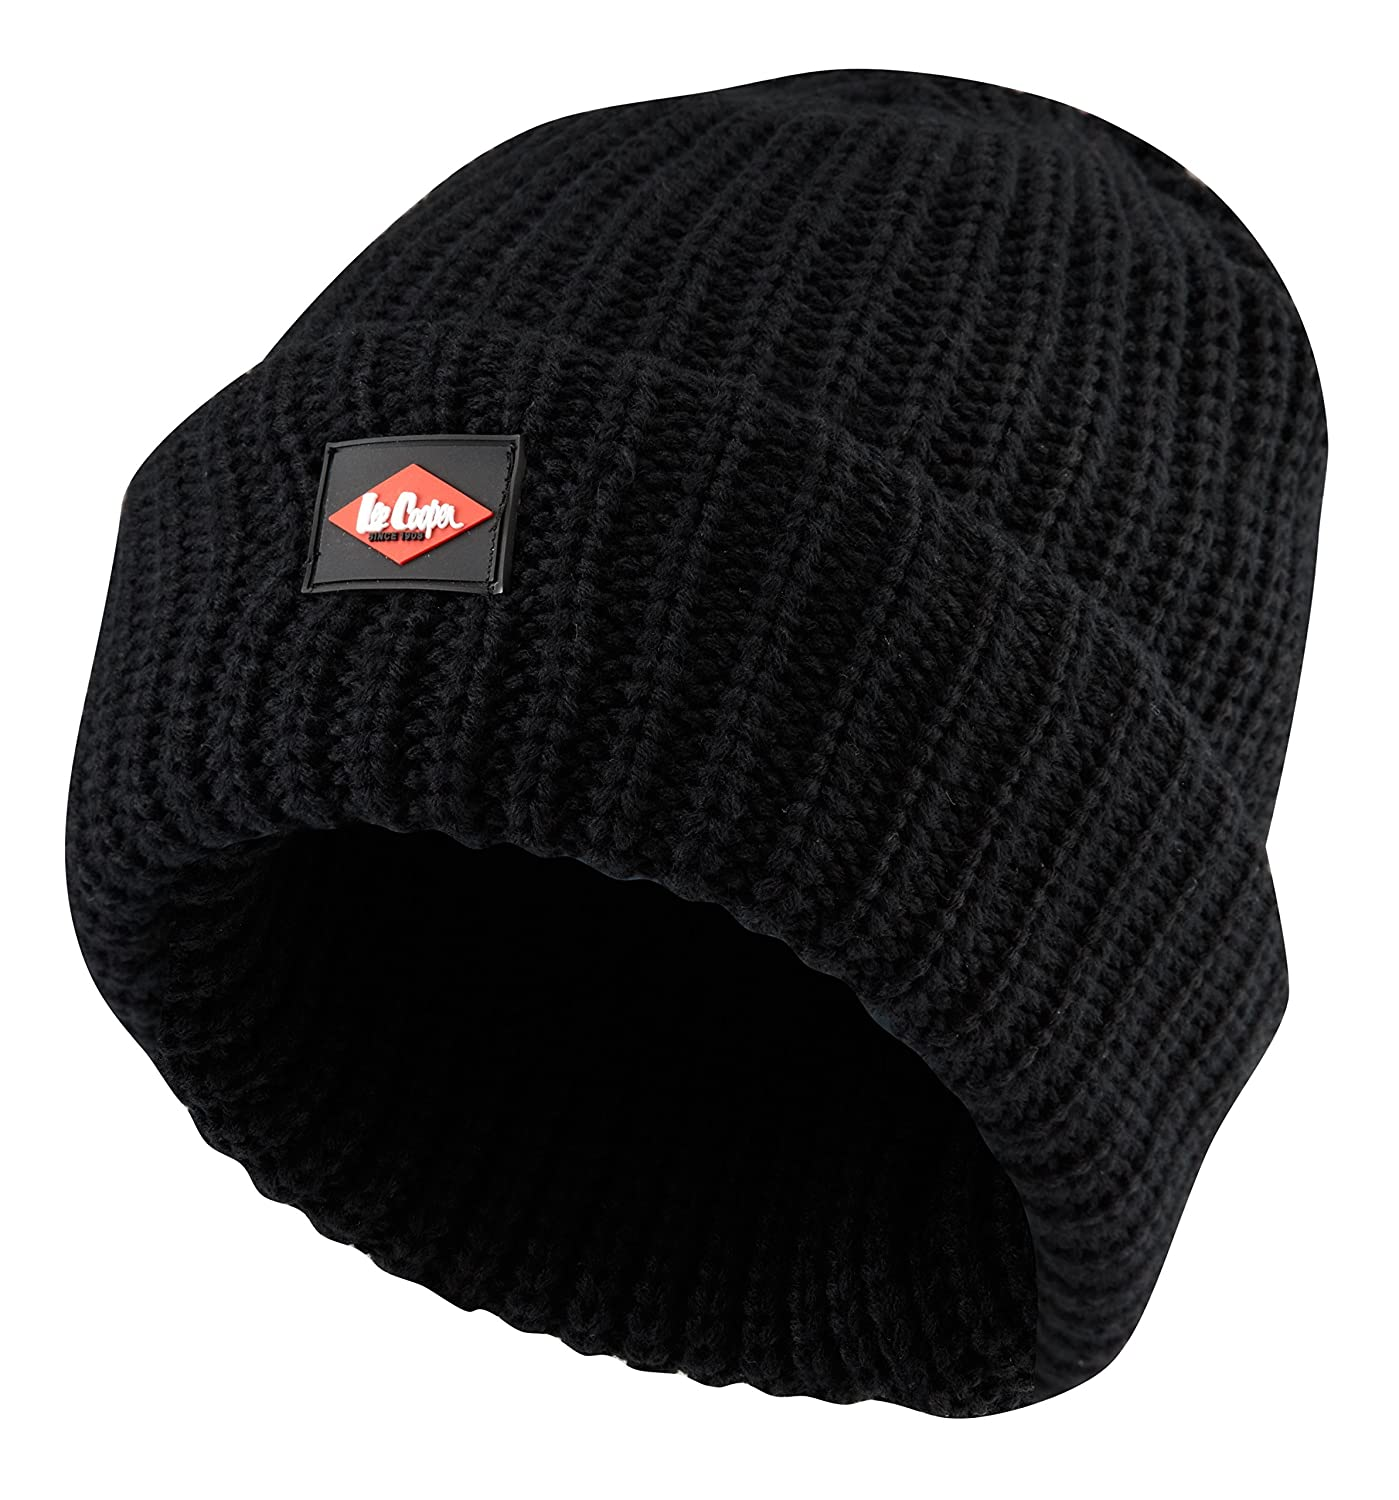 fa8e5824470d8 Lee Cooper Workwear LCHAT624 Mens Knitted Fleece Lined Work Safety Beanie  Hat